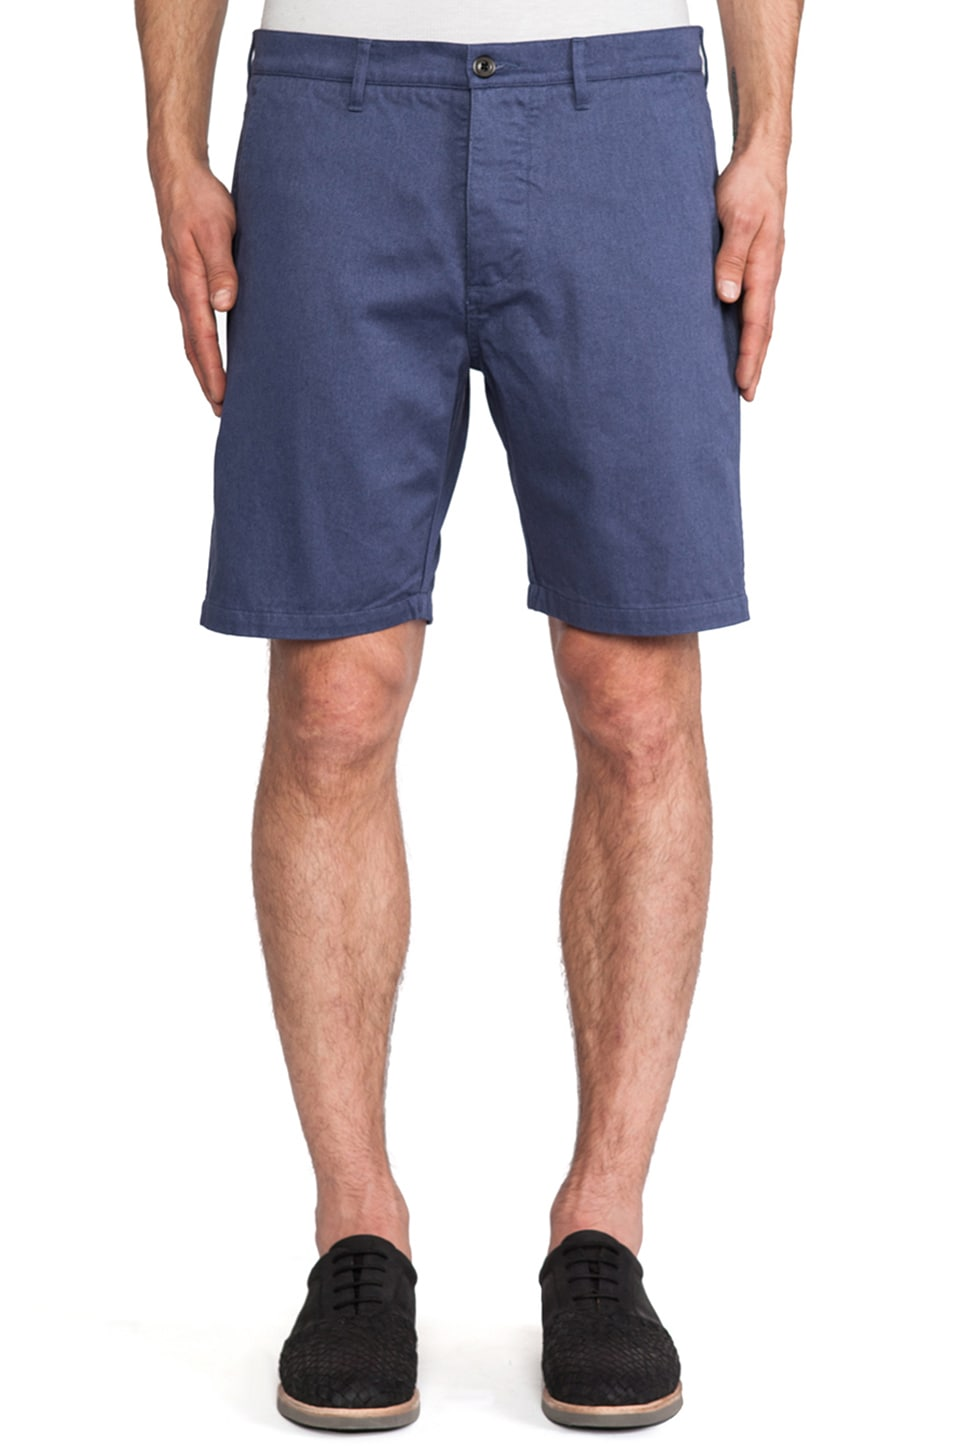 wings + horns Pigment Twill Short in Blue